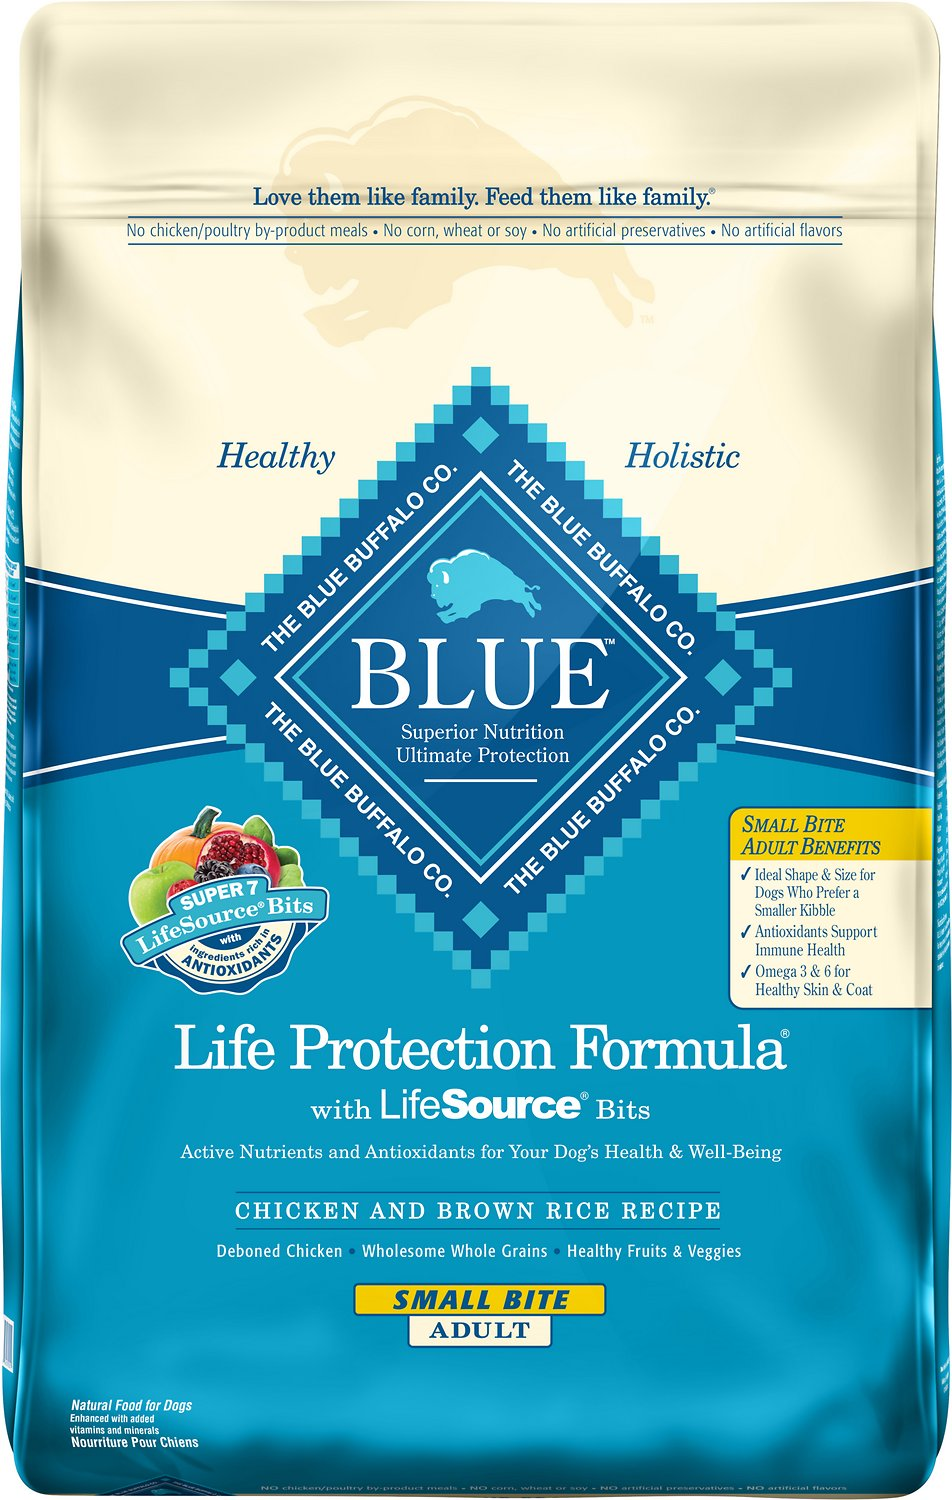 Blue buffalo life protection formula small bite adult chicken video forumfinder Choice Image